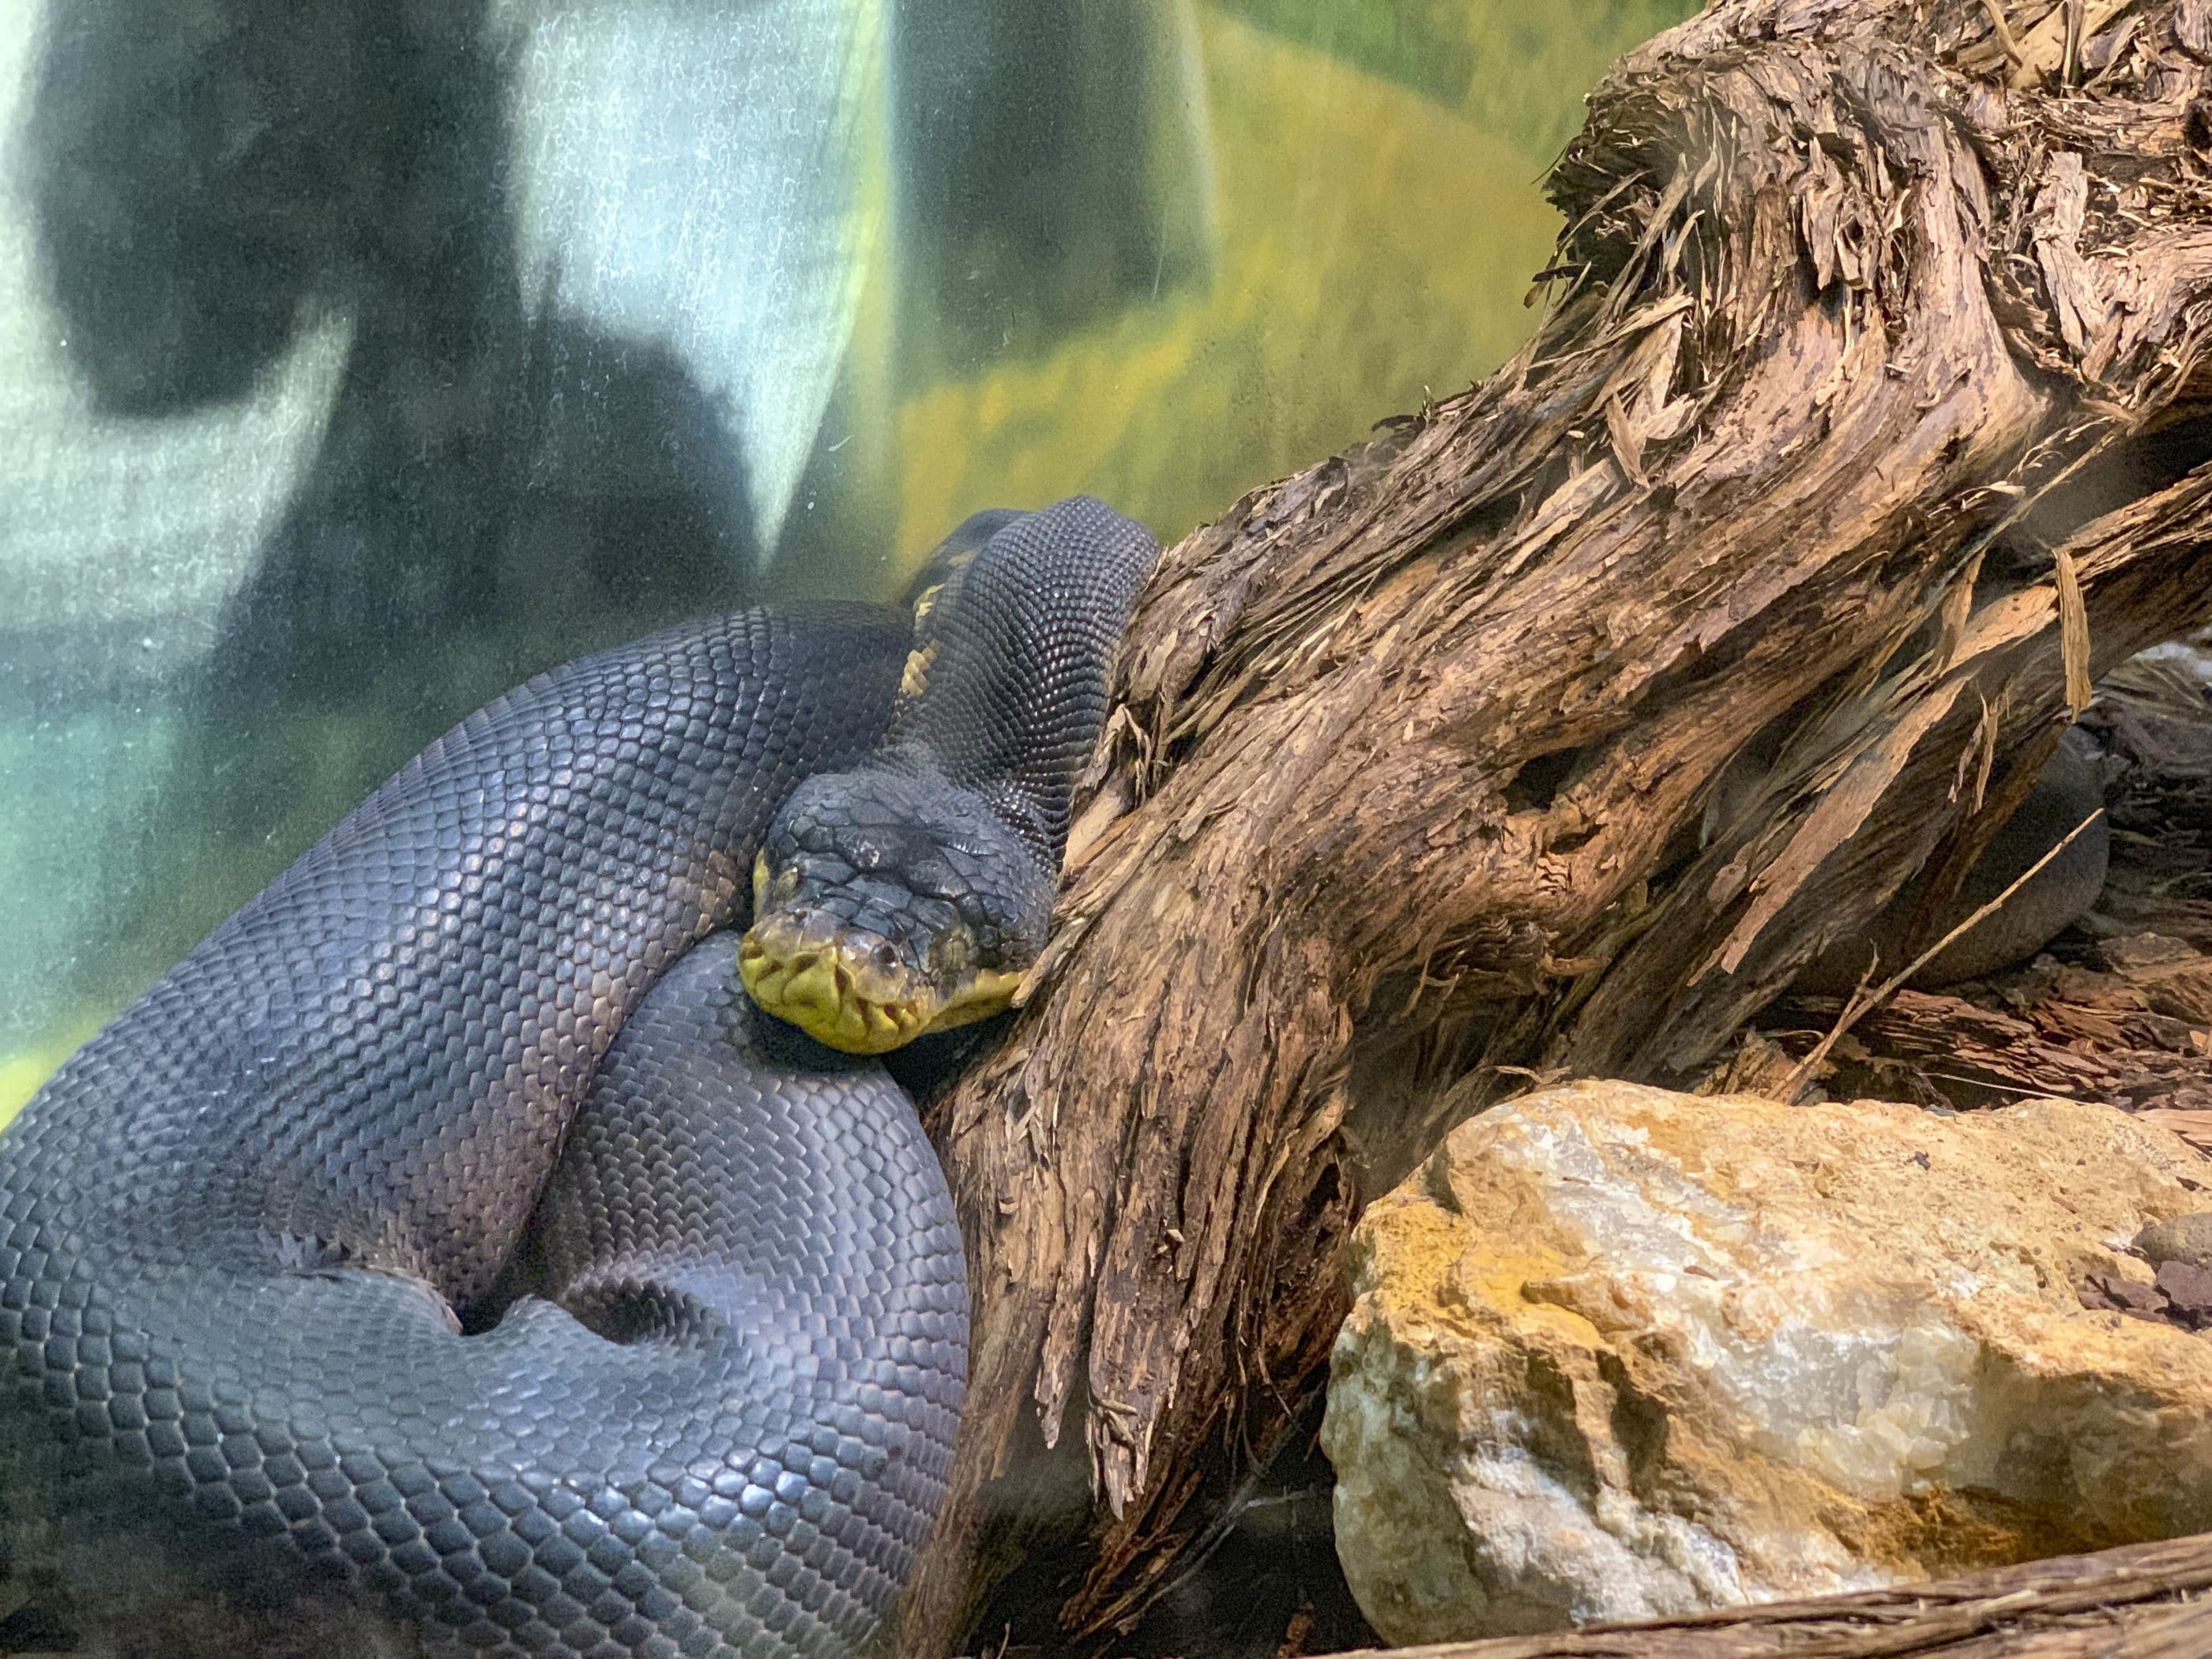 A snake rests on a log inside its Reptile House enclosure at San Diego Zoo.